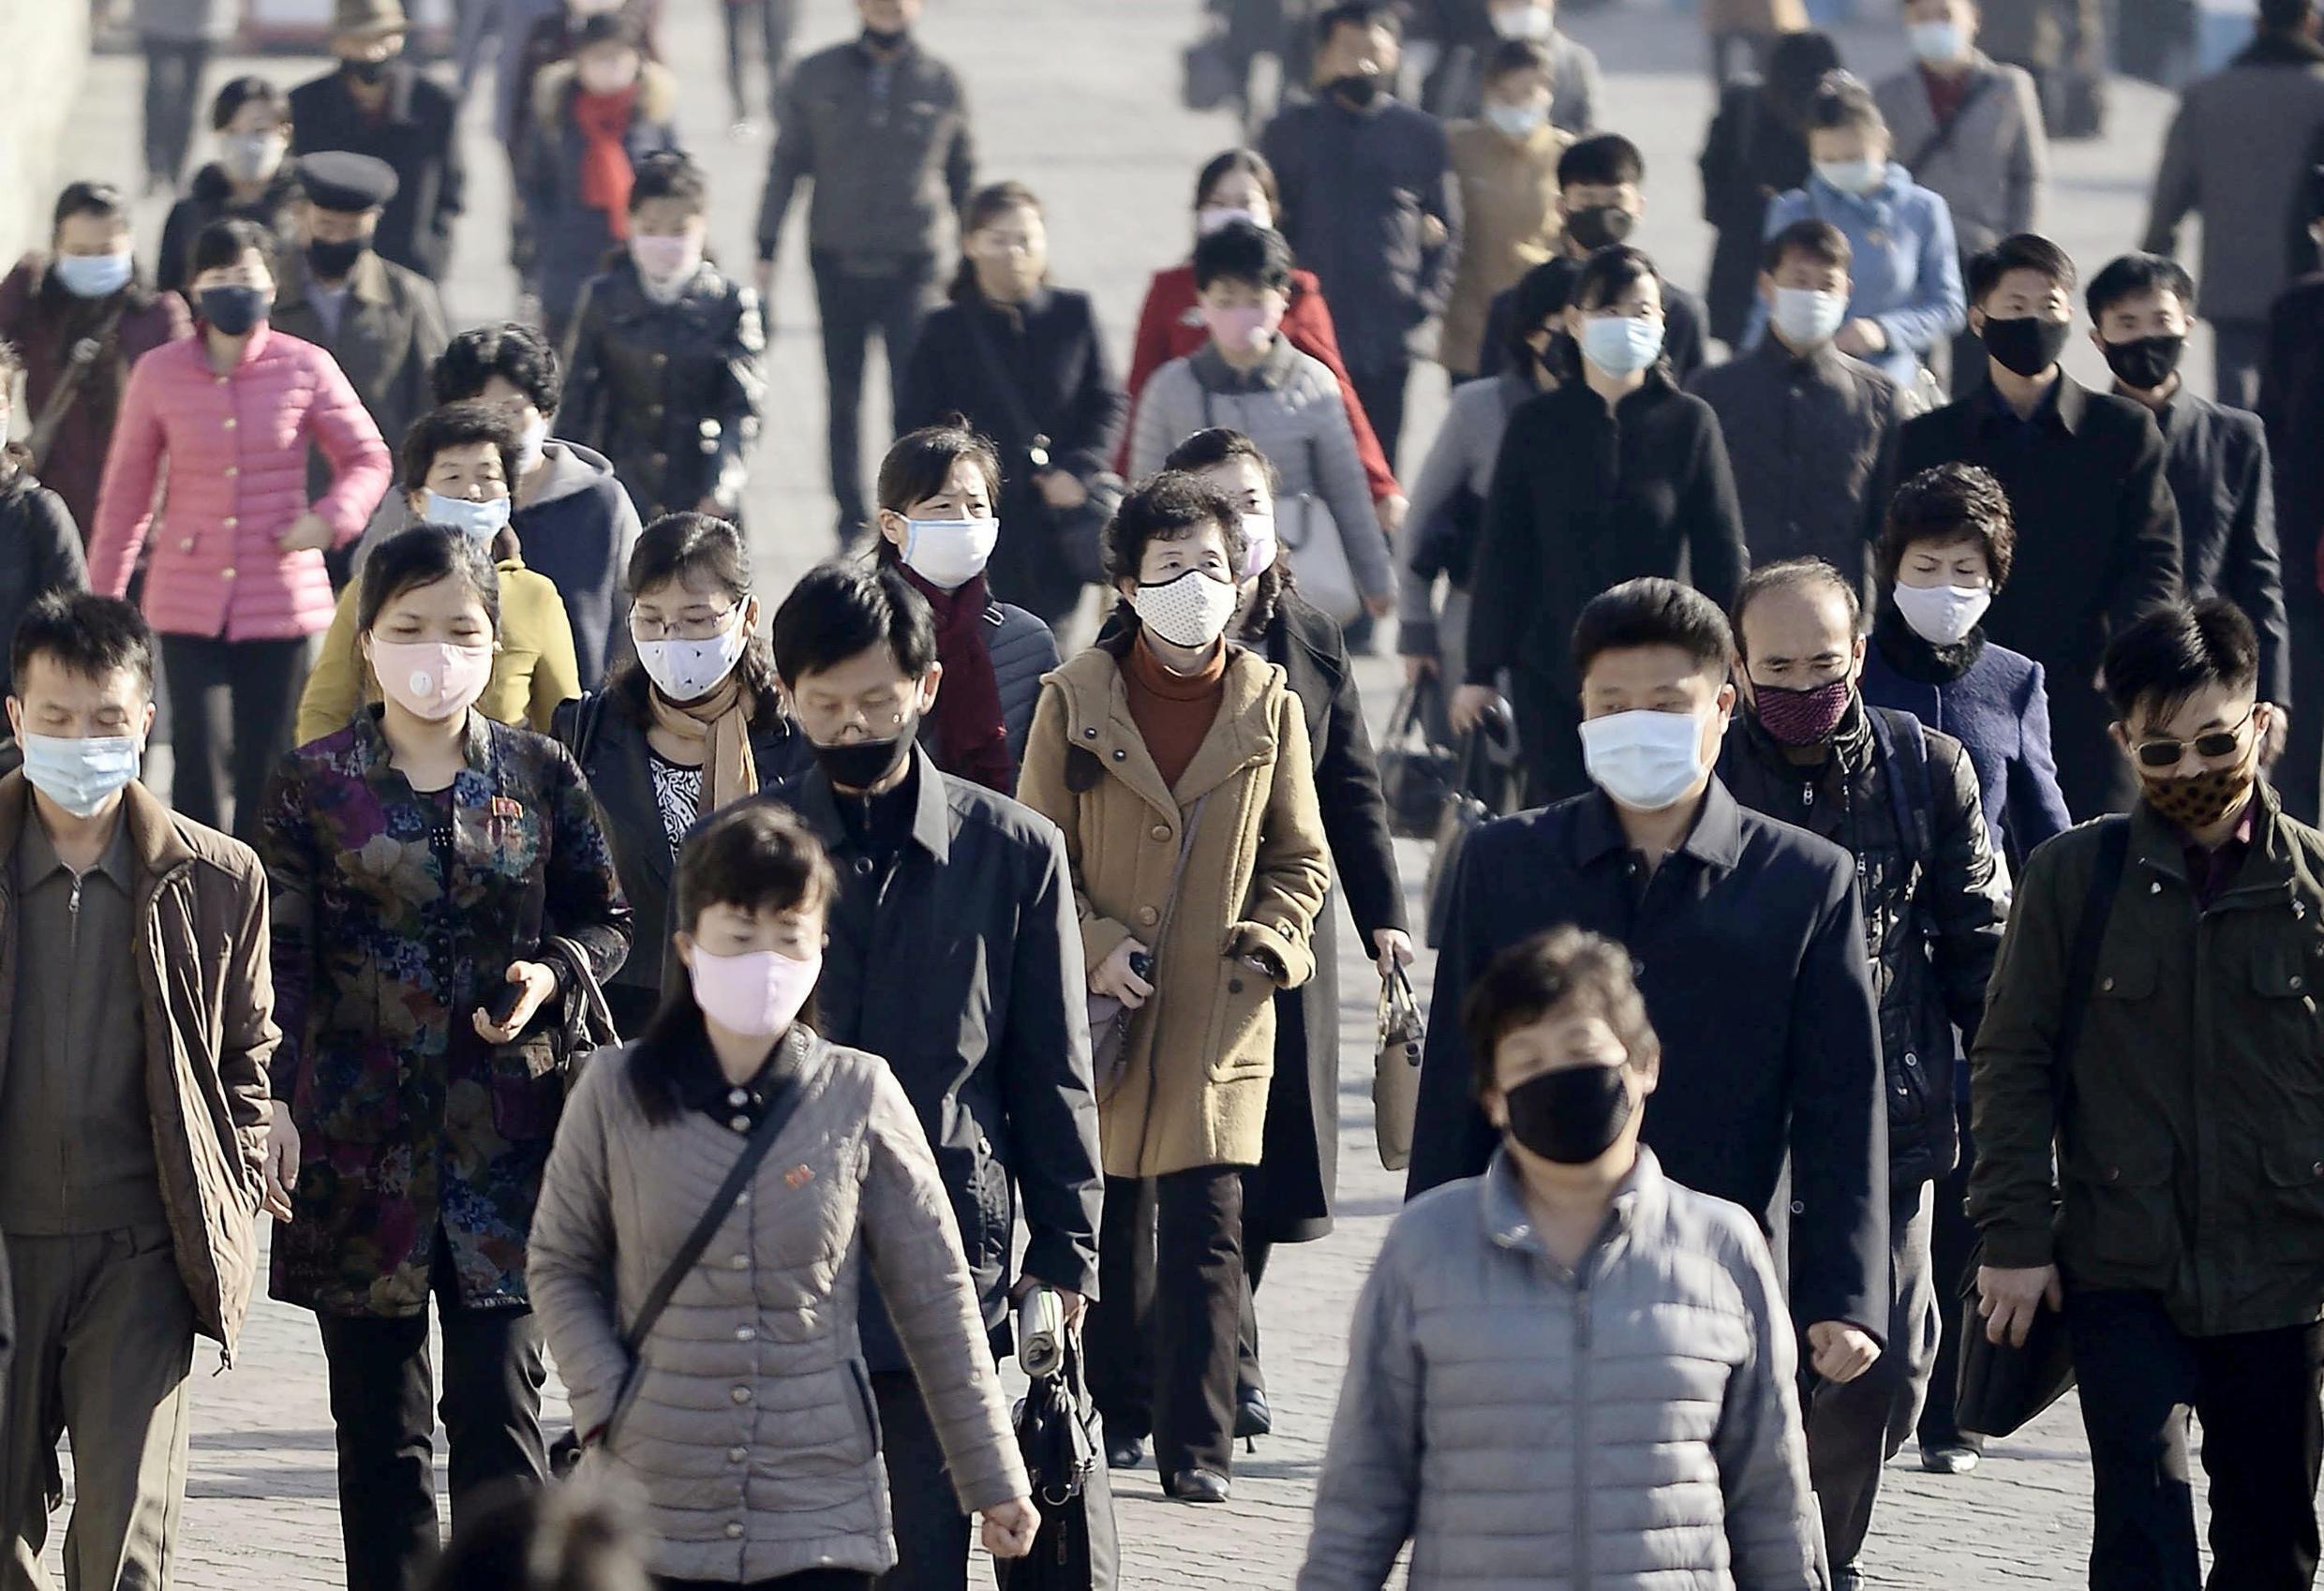 People wearing protective face masks commute amid concerns over the new coronavirus disease (COVID-19) in Pyongyang, North Korea March 30, 2020, in this photo released by Kyodo. Picture taken March 30, 2020.